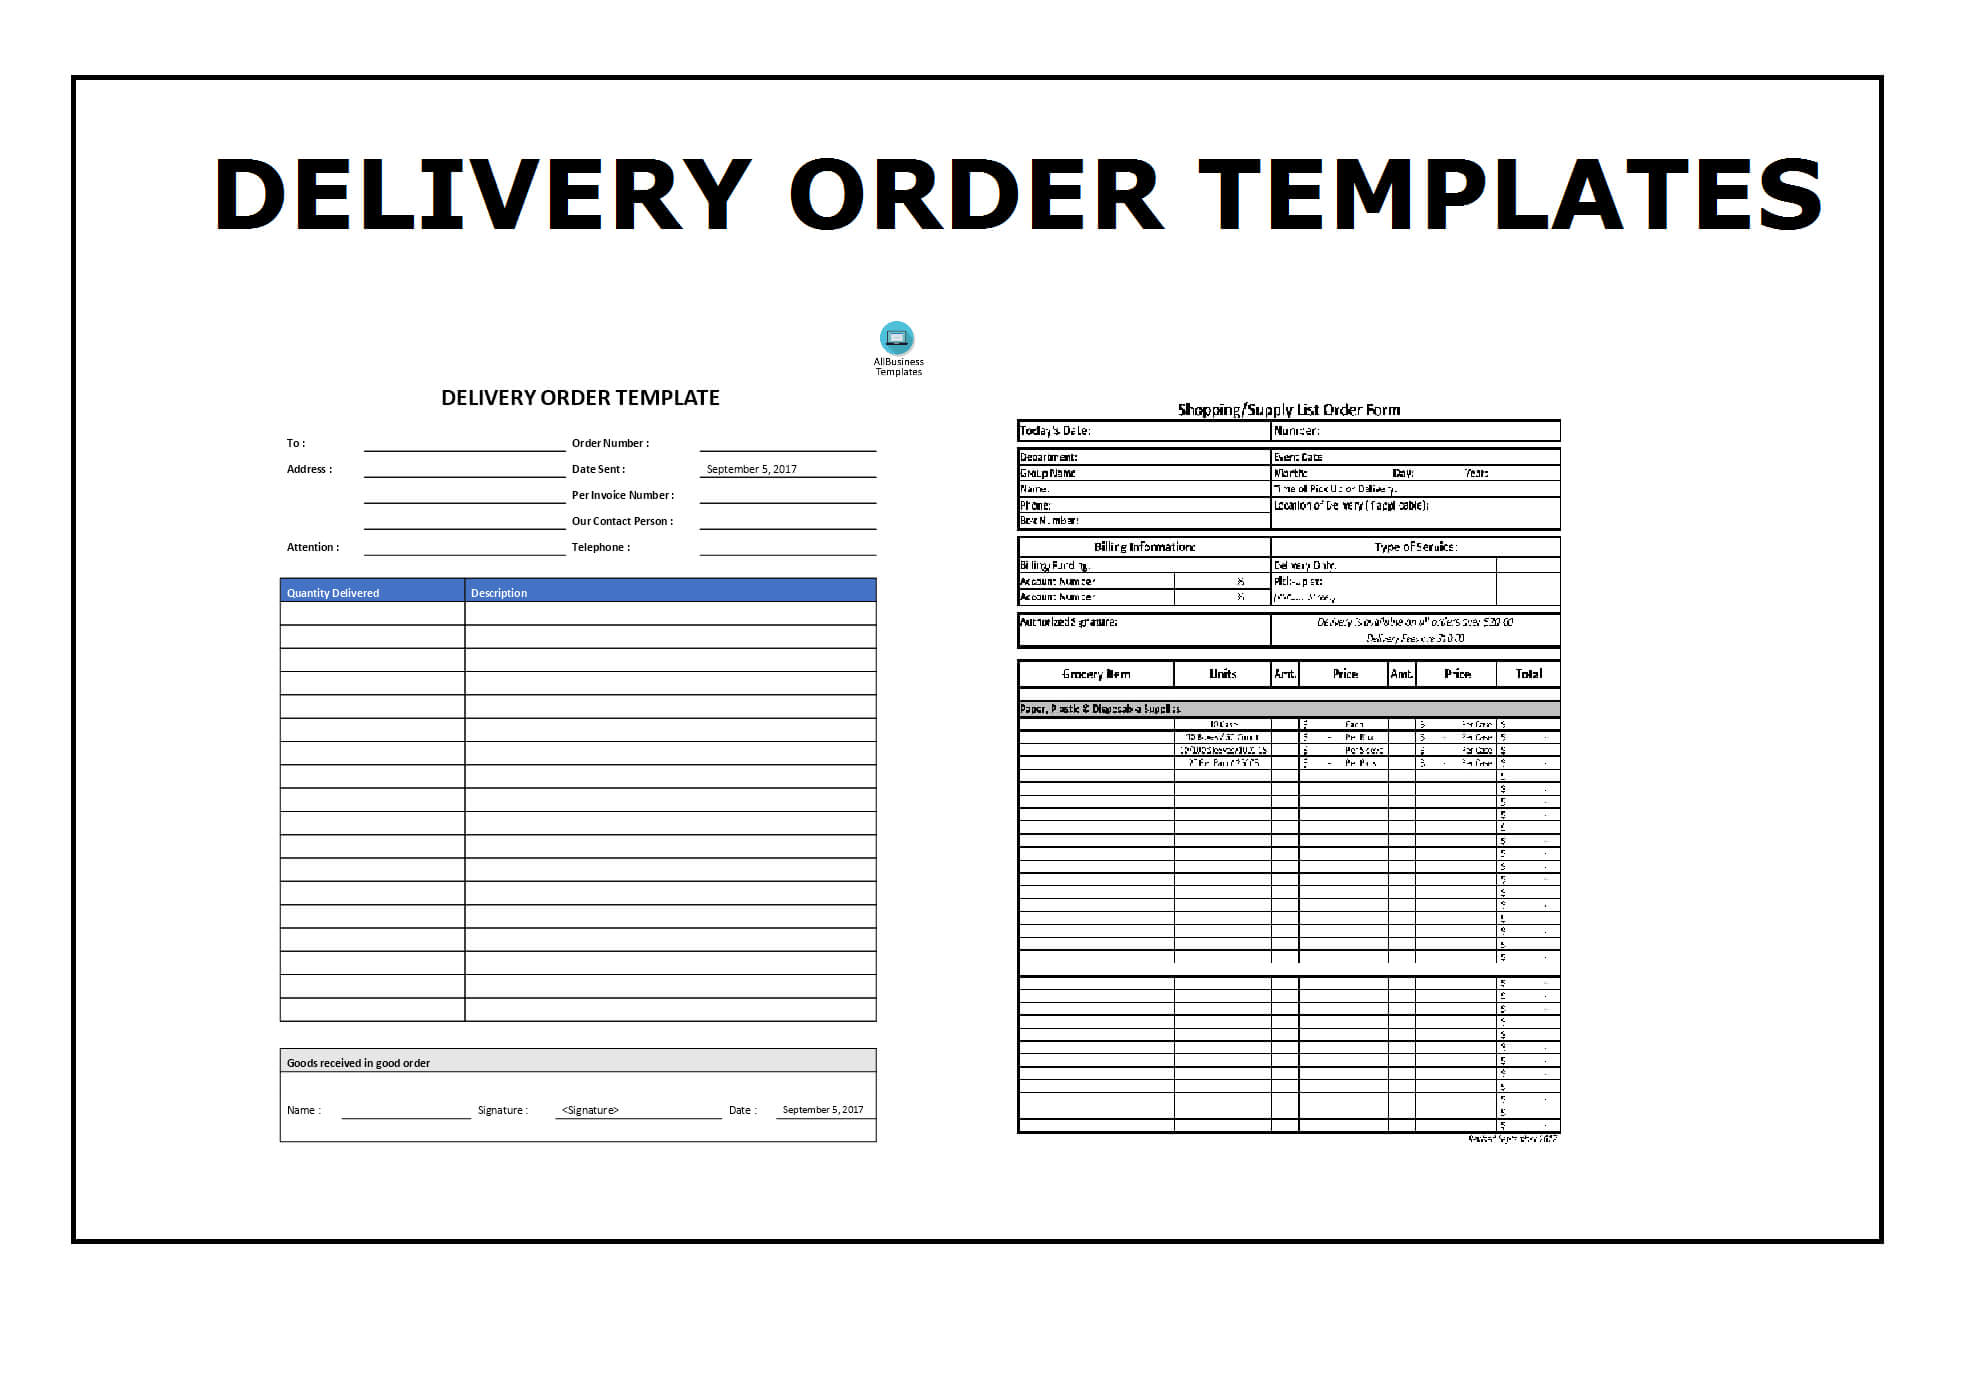 Delivery Order Template | Topics About Business Forms Within Proof Of Delivery Template Word